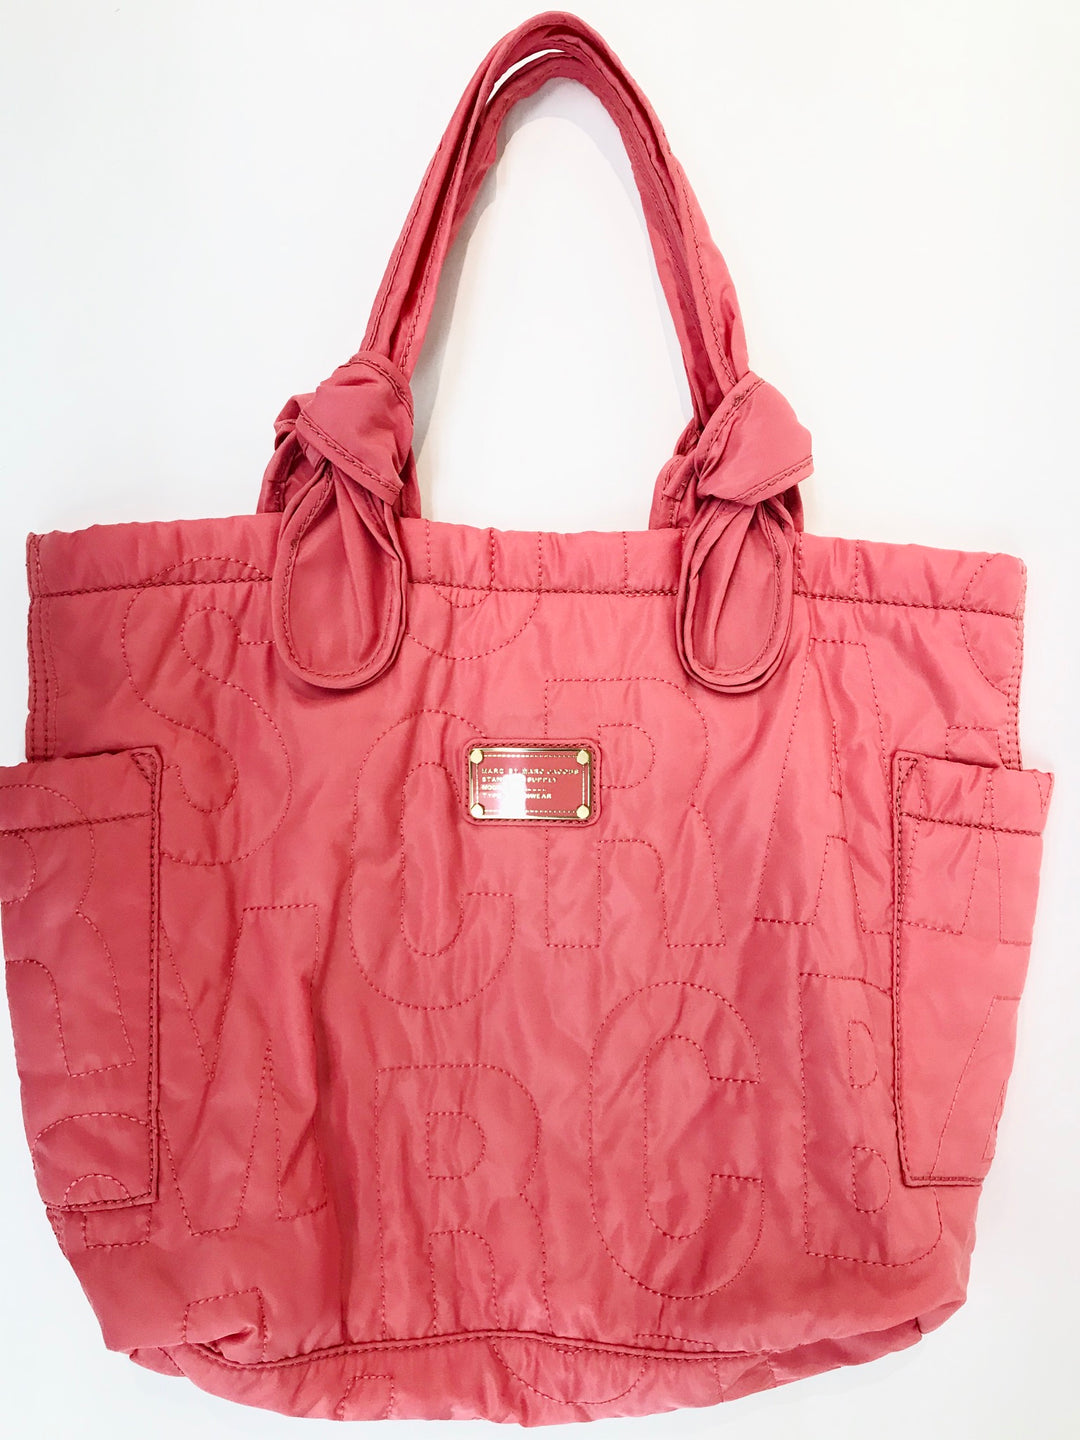 Primary Photo - BRAND: MARC BY MARC JACOBS <BR>STYLE: HANDBAG DESIGNER <BR>COLOR: PEACH <BR>SIZE: LARGE <BR>SKU: 262-26211-123319<BR>-NEW WITHOUT TAG-<BR>DESIGNER BRAND-FINAL SALE<BR>